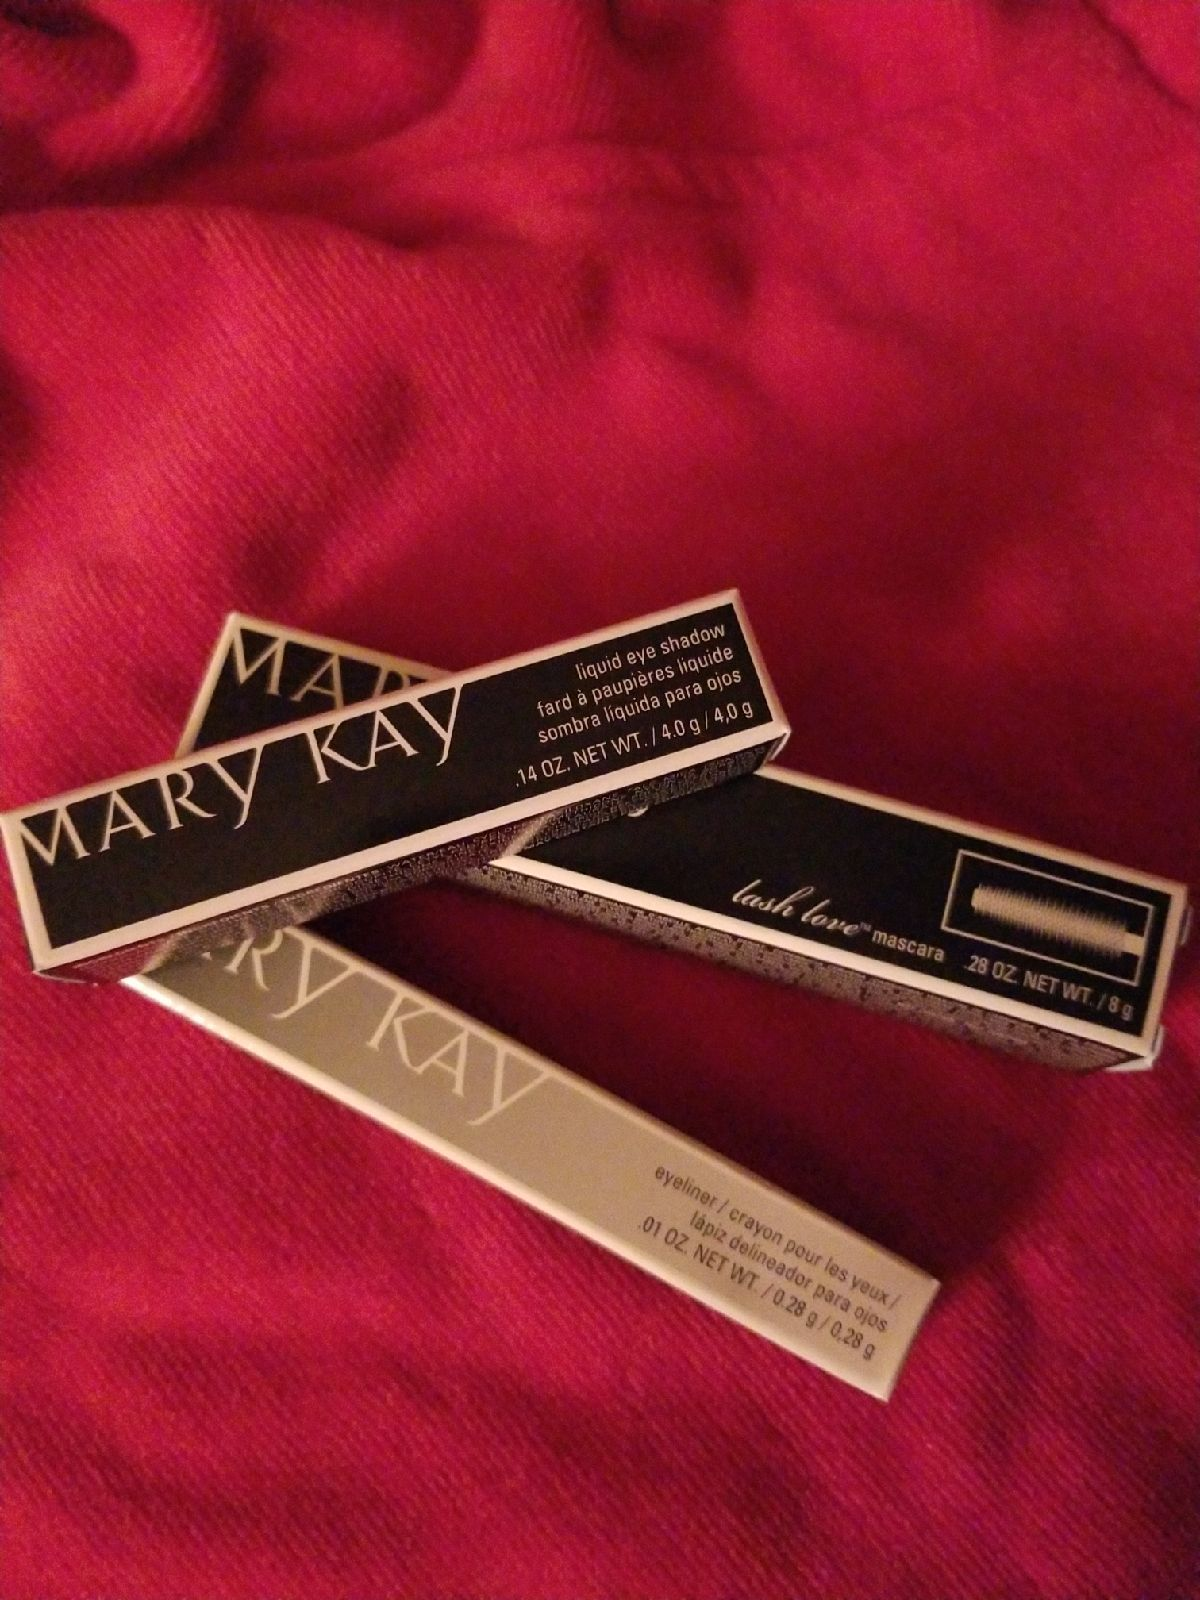 Mary Kay 3 eye products